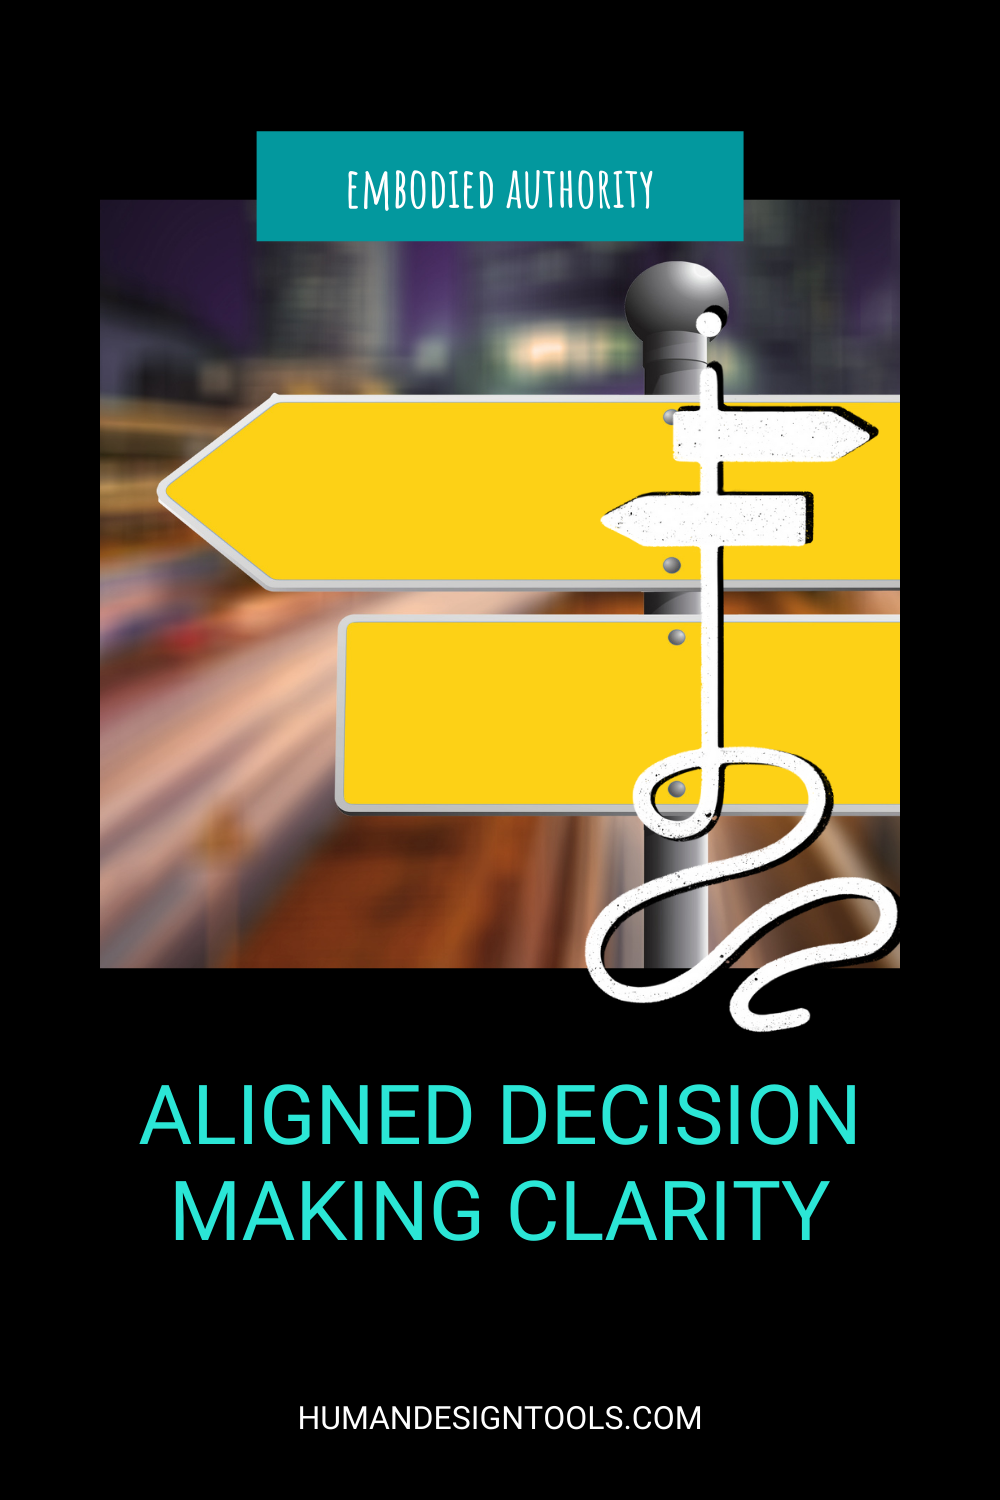 Aligned Decision Making Clarity